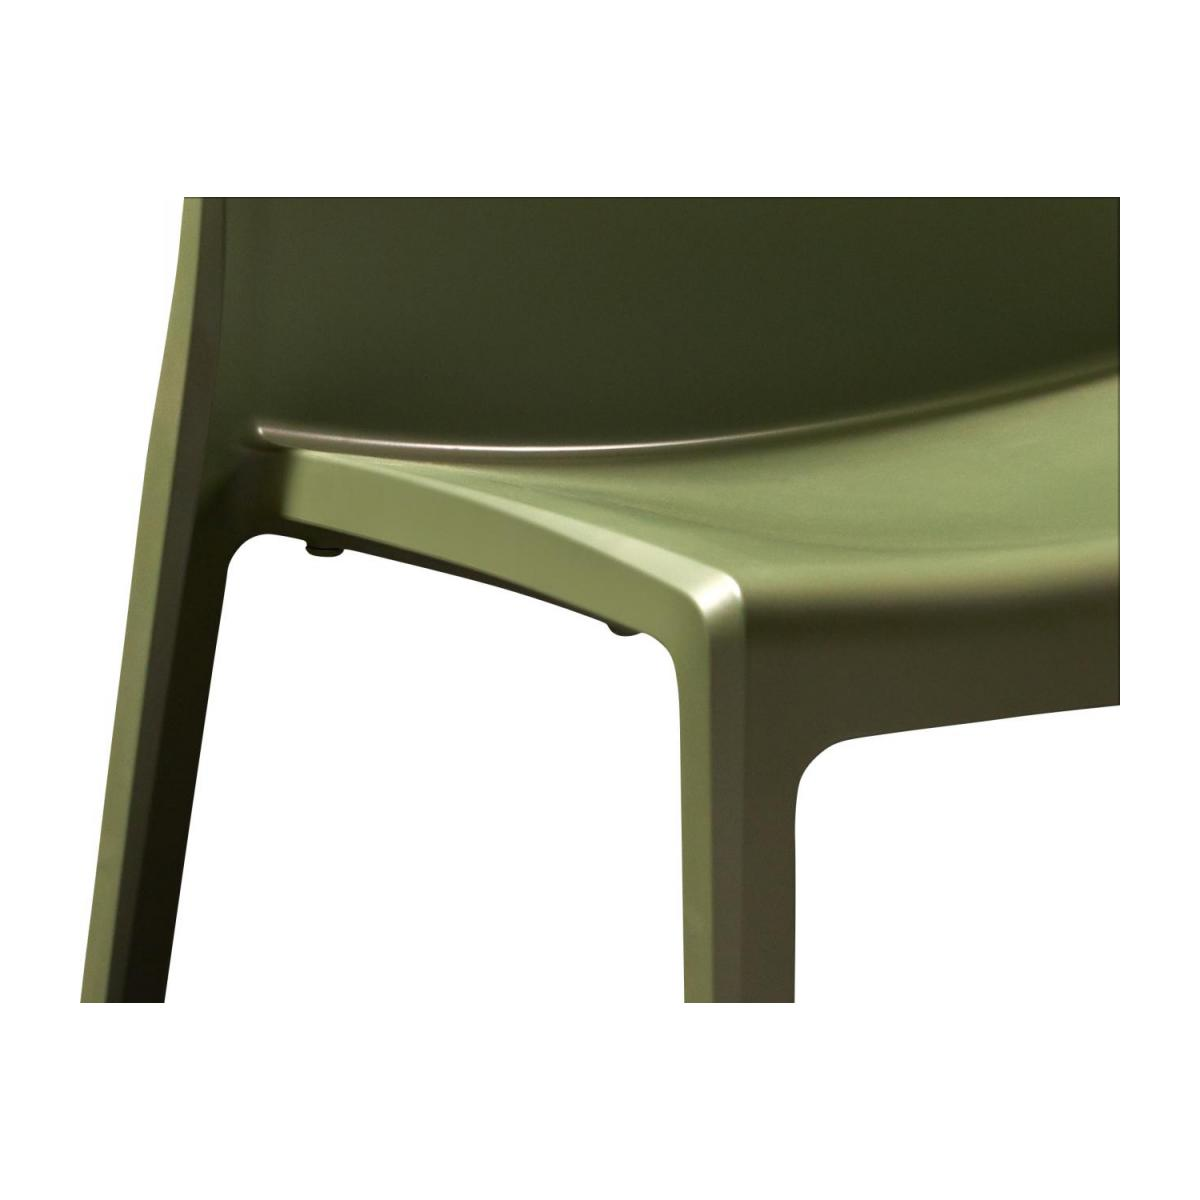 Chaises Classiques Salle Manger Malya Chaise Verte